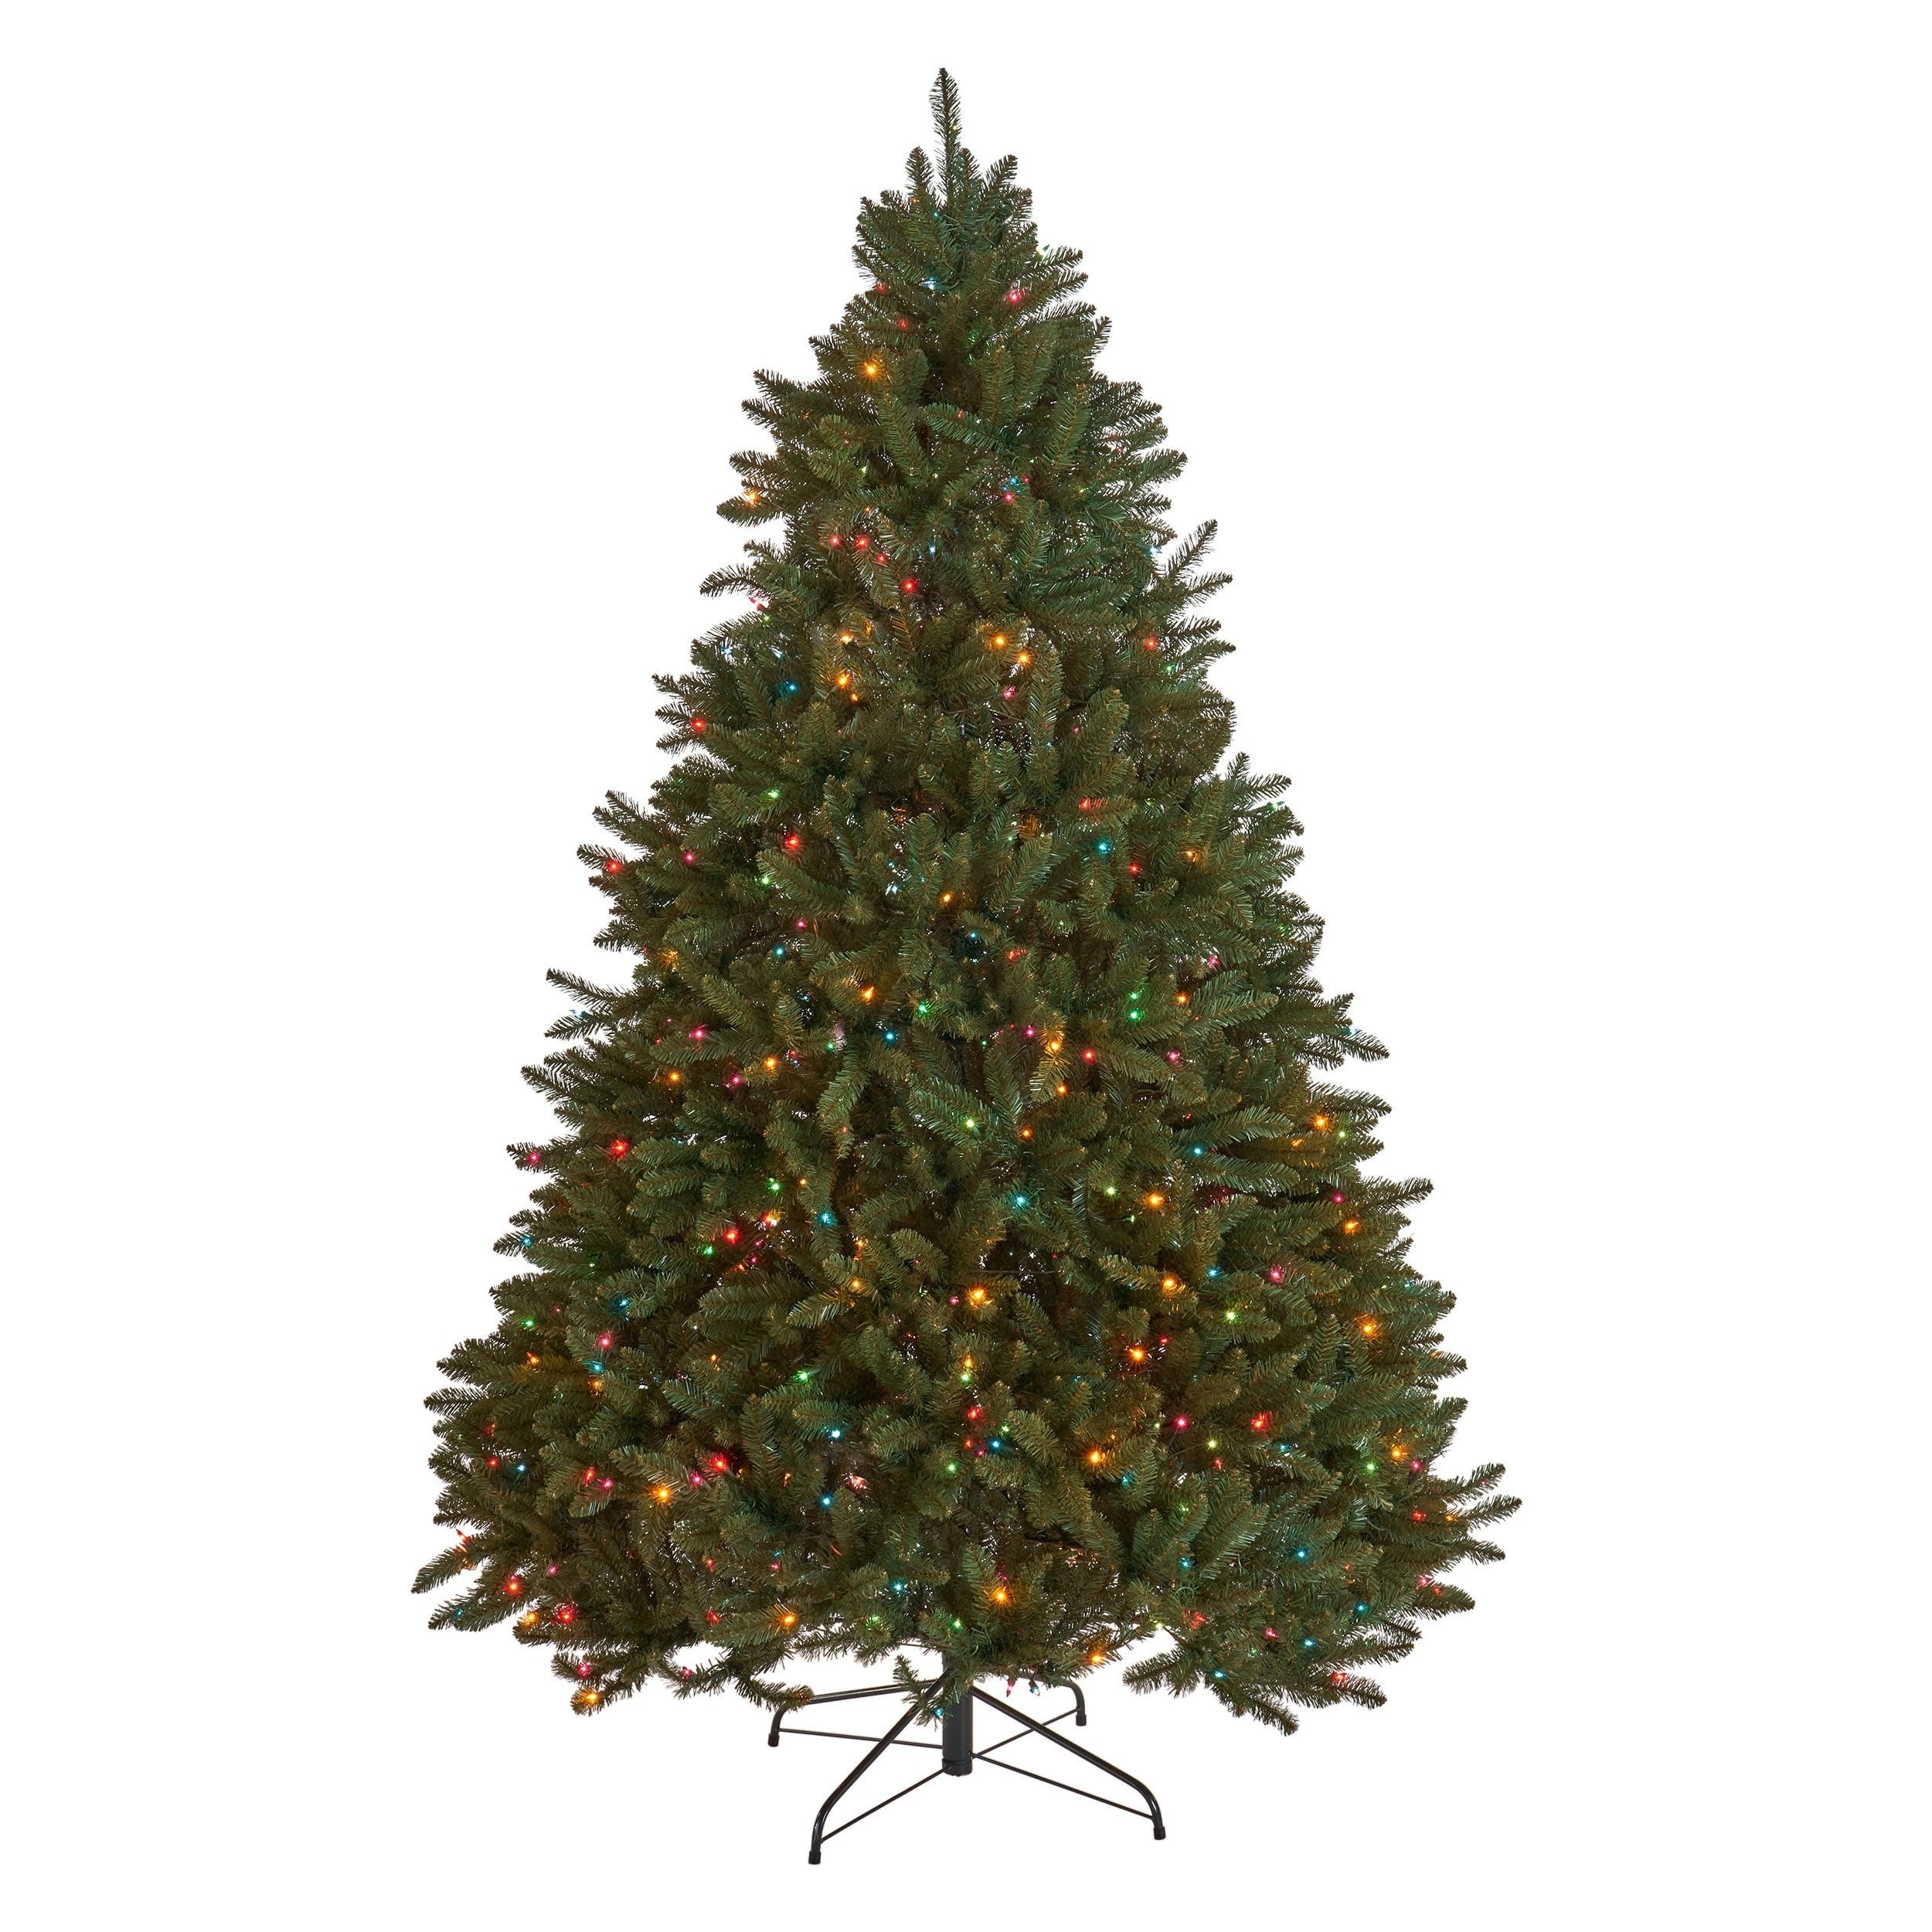 Best Deal On Artificial Christmas Trees: Buy Christmas Trees Online At Overstock